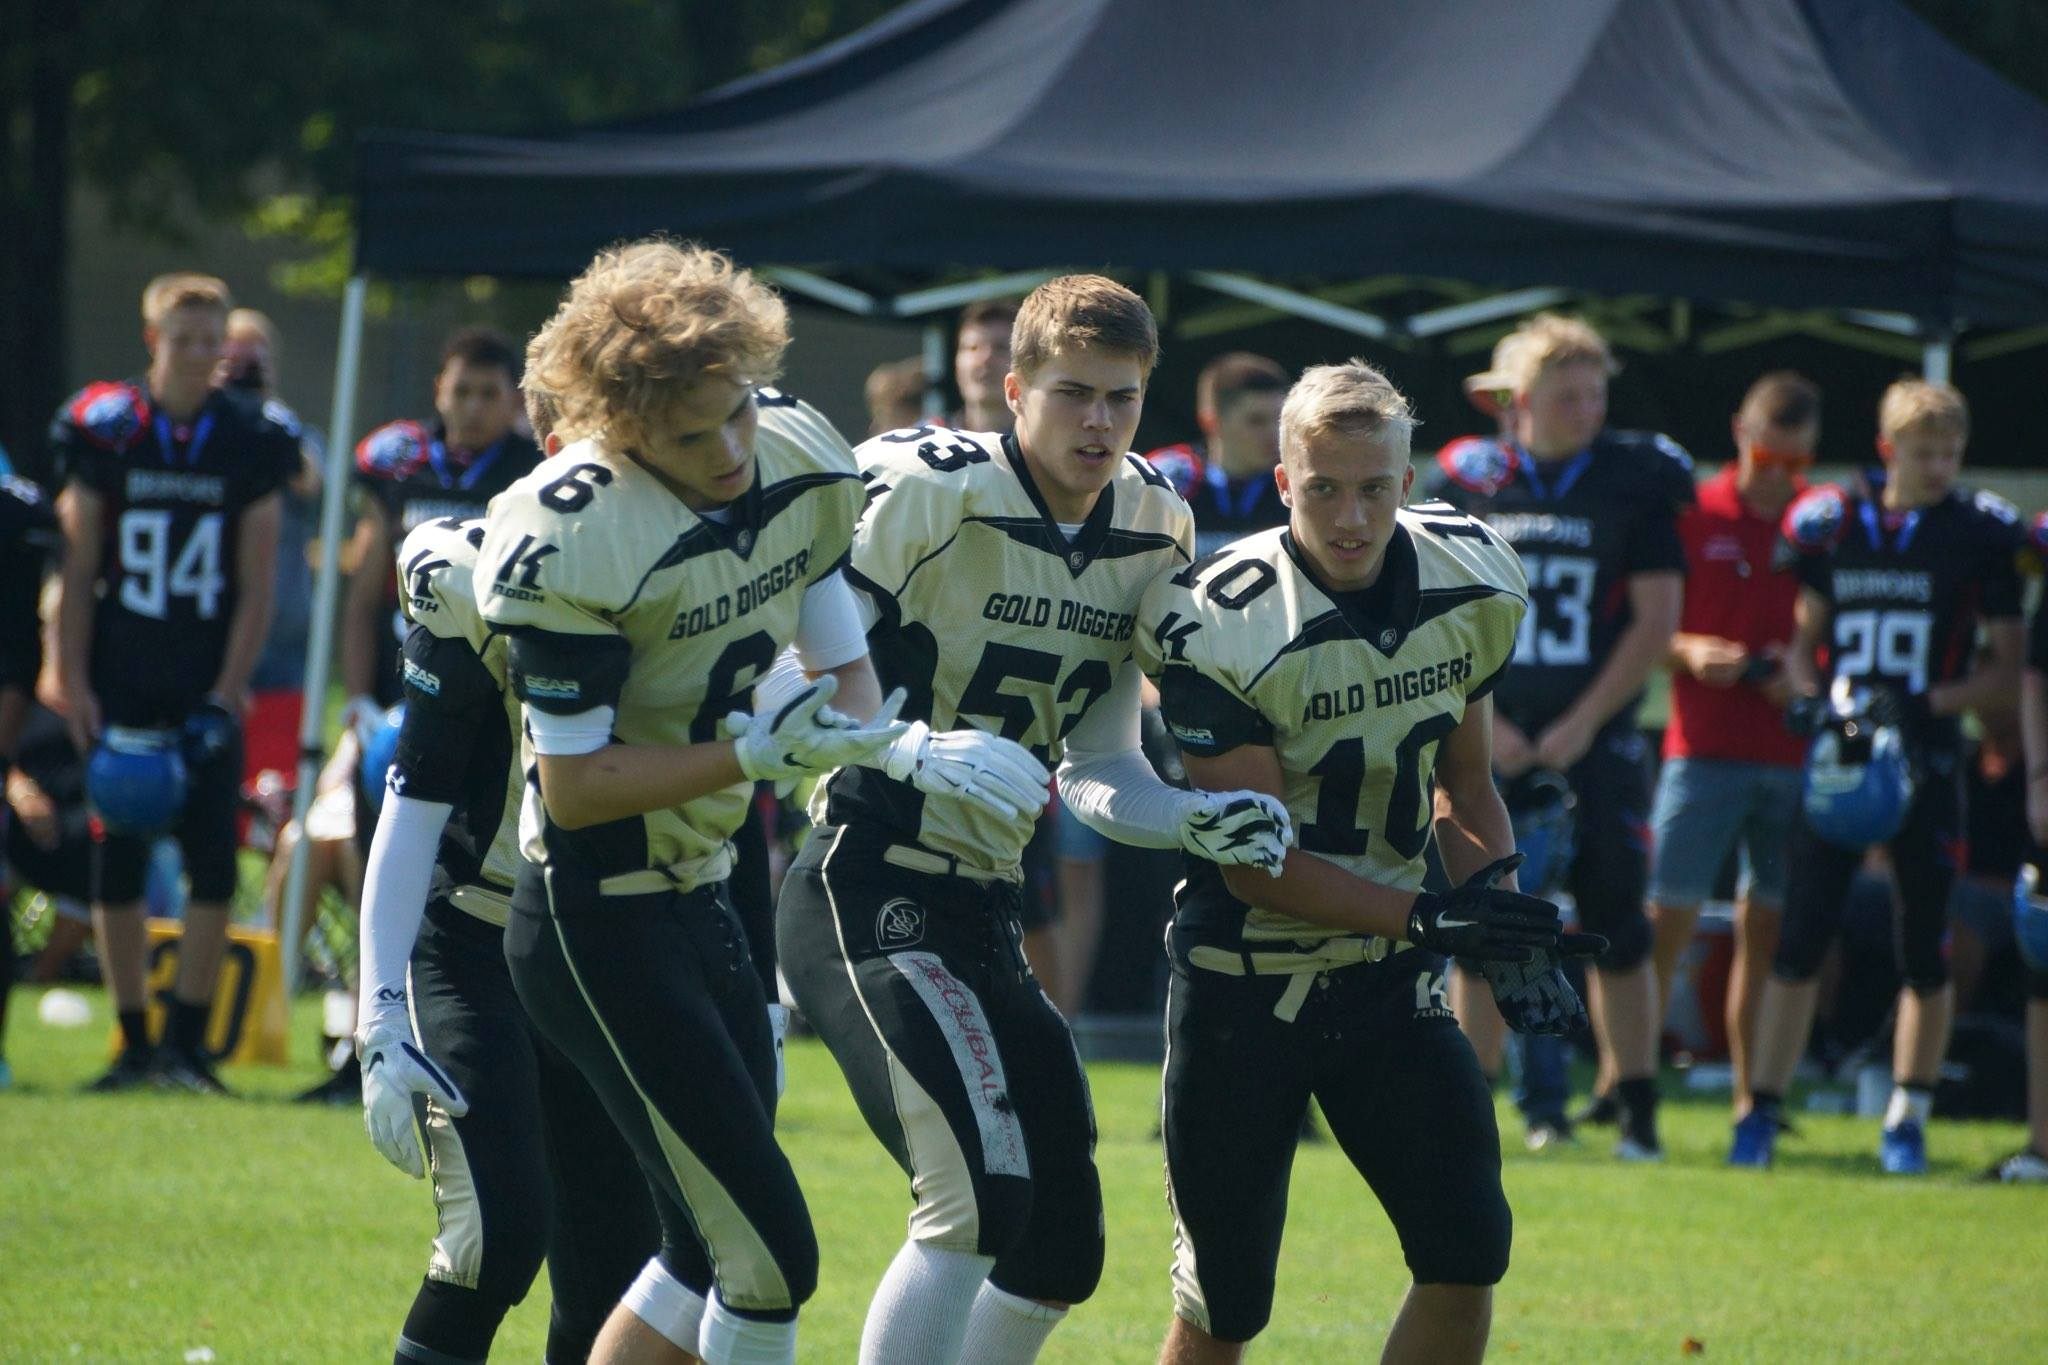 U16 profiles WR Thomas Ashworth(left), LB Magnus Vöge(middle), RB Nicklas Hansen(right). - Photo by Kenneth Ulrich